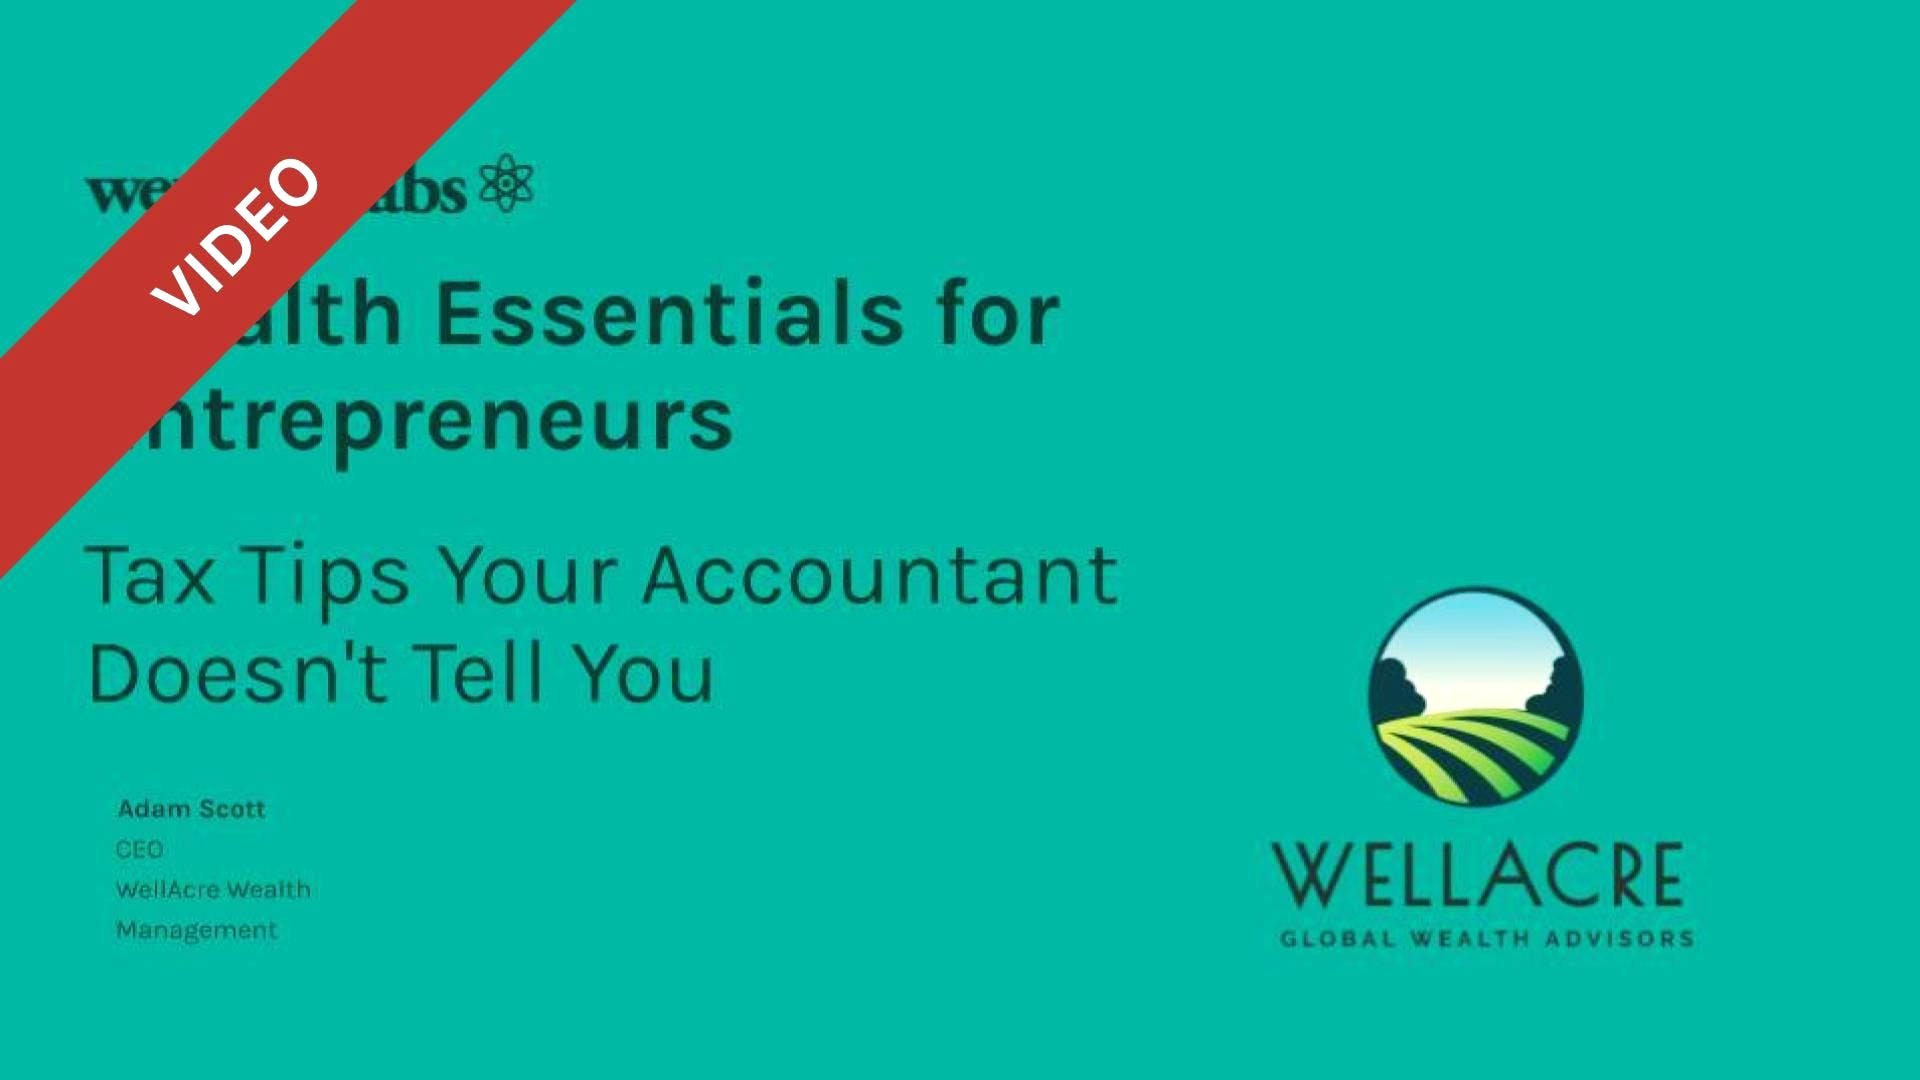 Wealth Essentials How to Save A Fortune: Tax Tips Your Accountant Doesn't Tell You